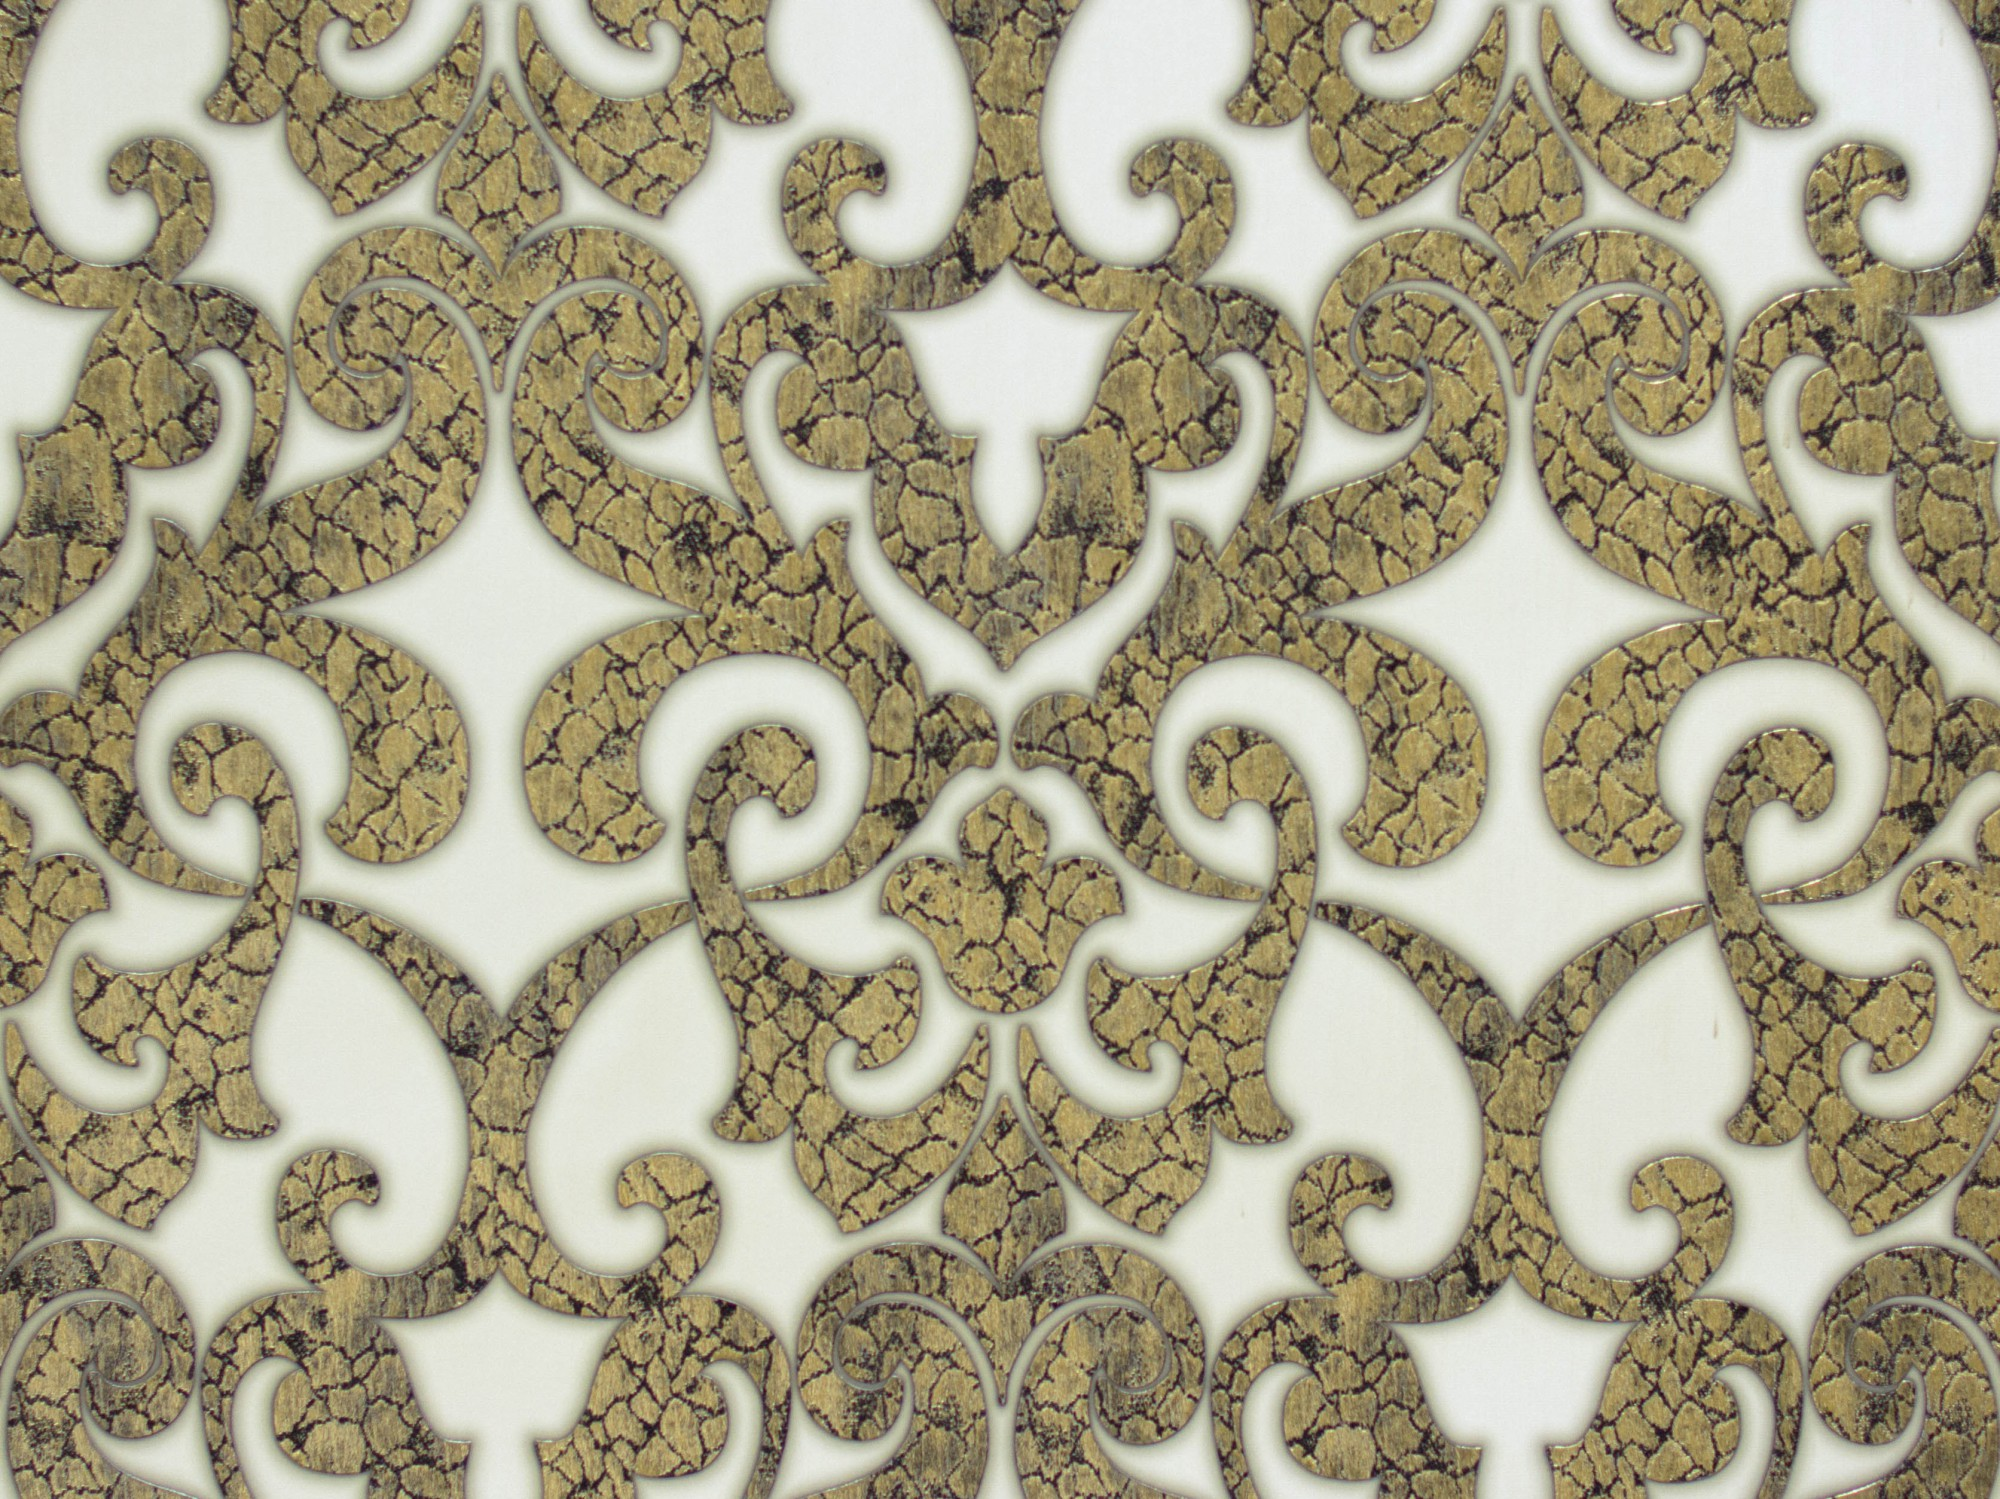 Weiss gold tapeten alle ideen ber home design for Ornament tapete rosa